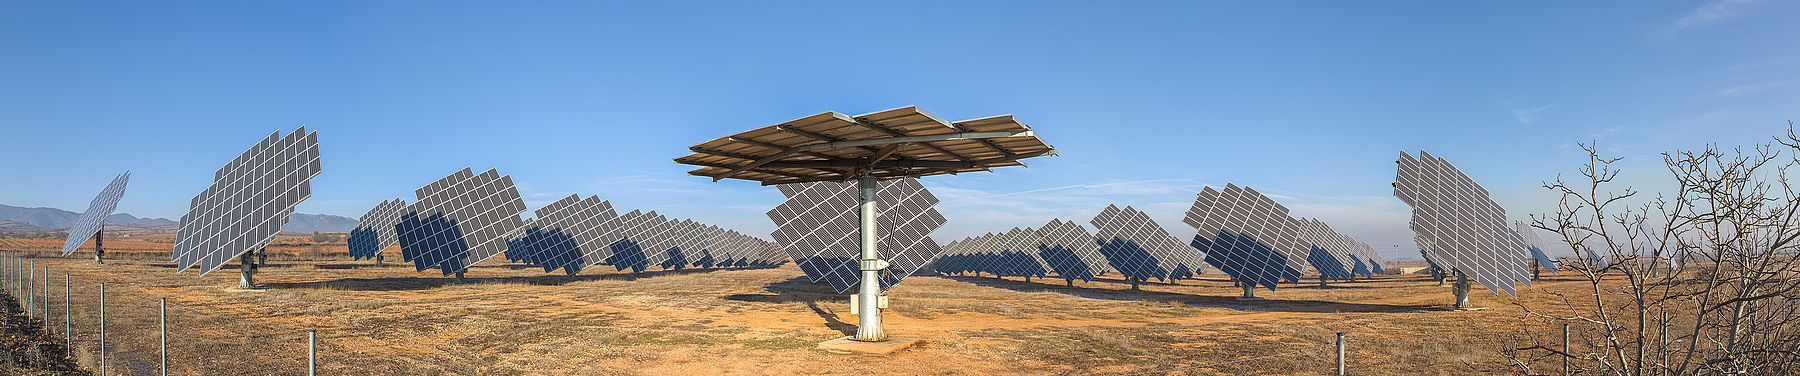 Renewable energy in spain wikipedia - Tipos de paneles solares ...